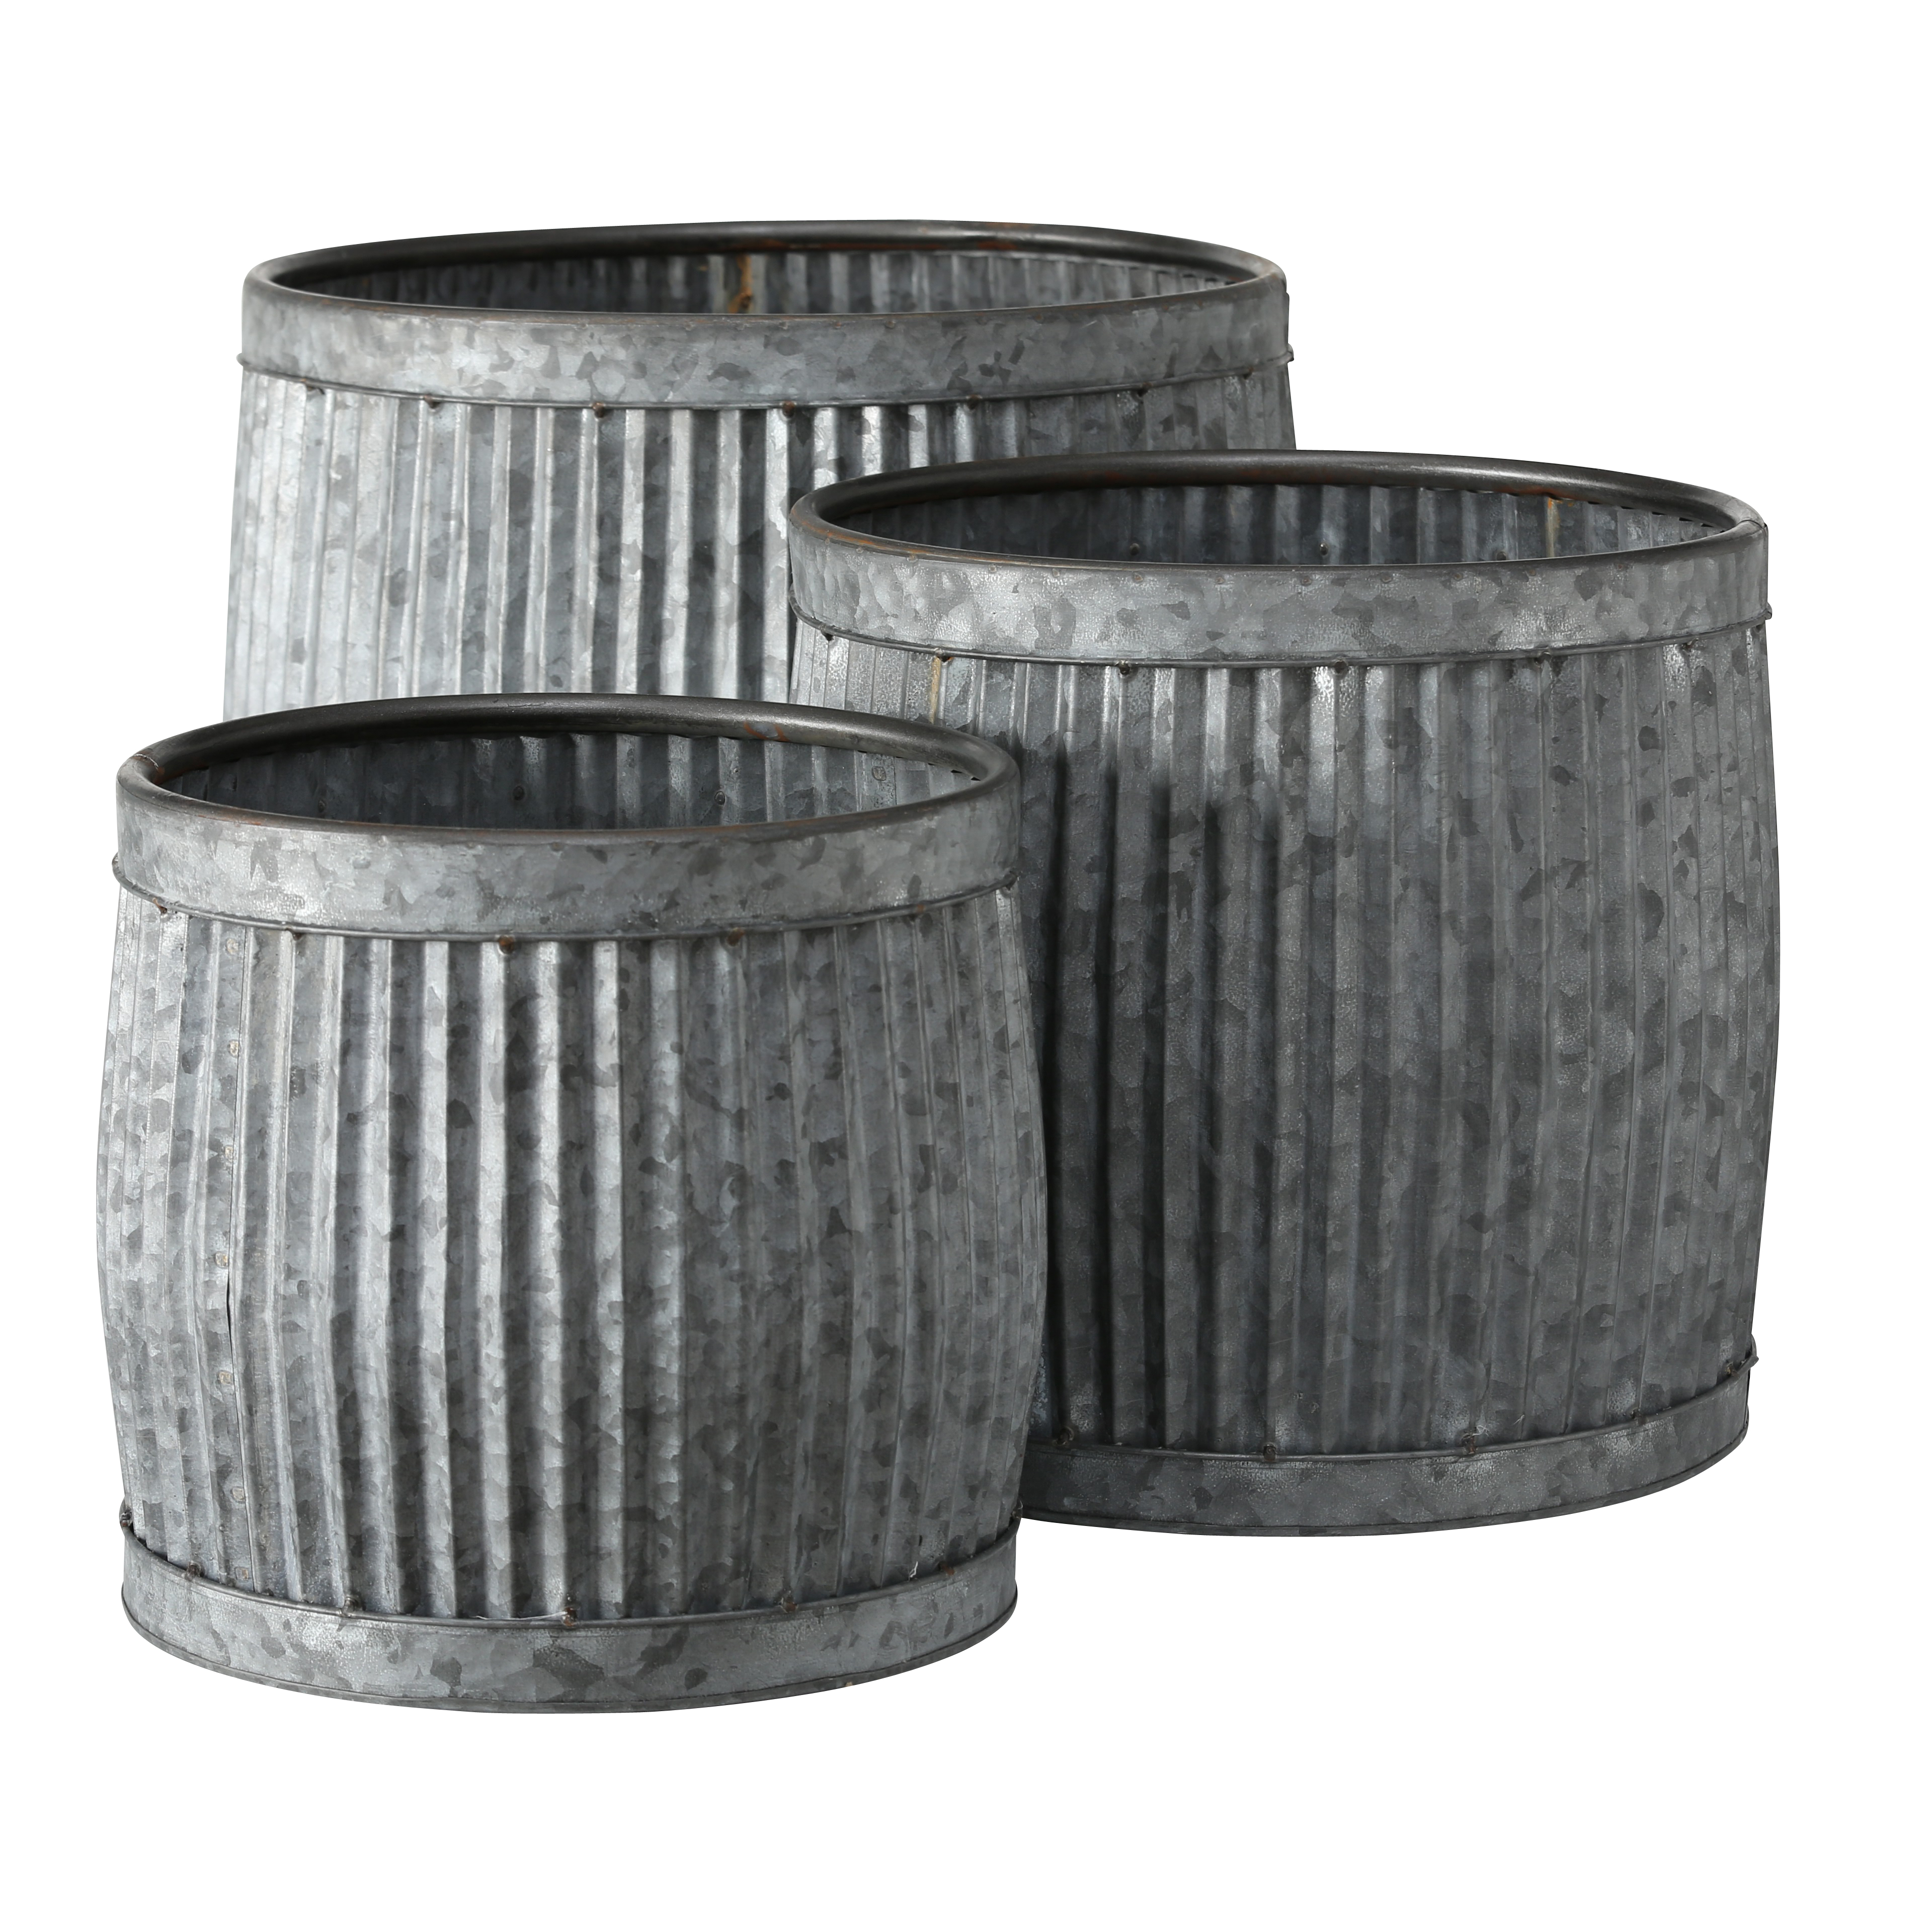 French Country Style Belly Bucket Planters Set Of 3 Galvanized Metal Corrugated Cache Pots Rustic Wash Basin From Over 1 Ft Diameter 17 12 Inches Walmart Com Walmart Com